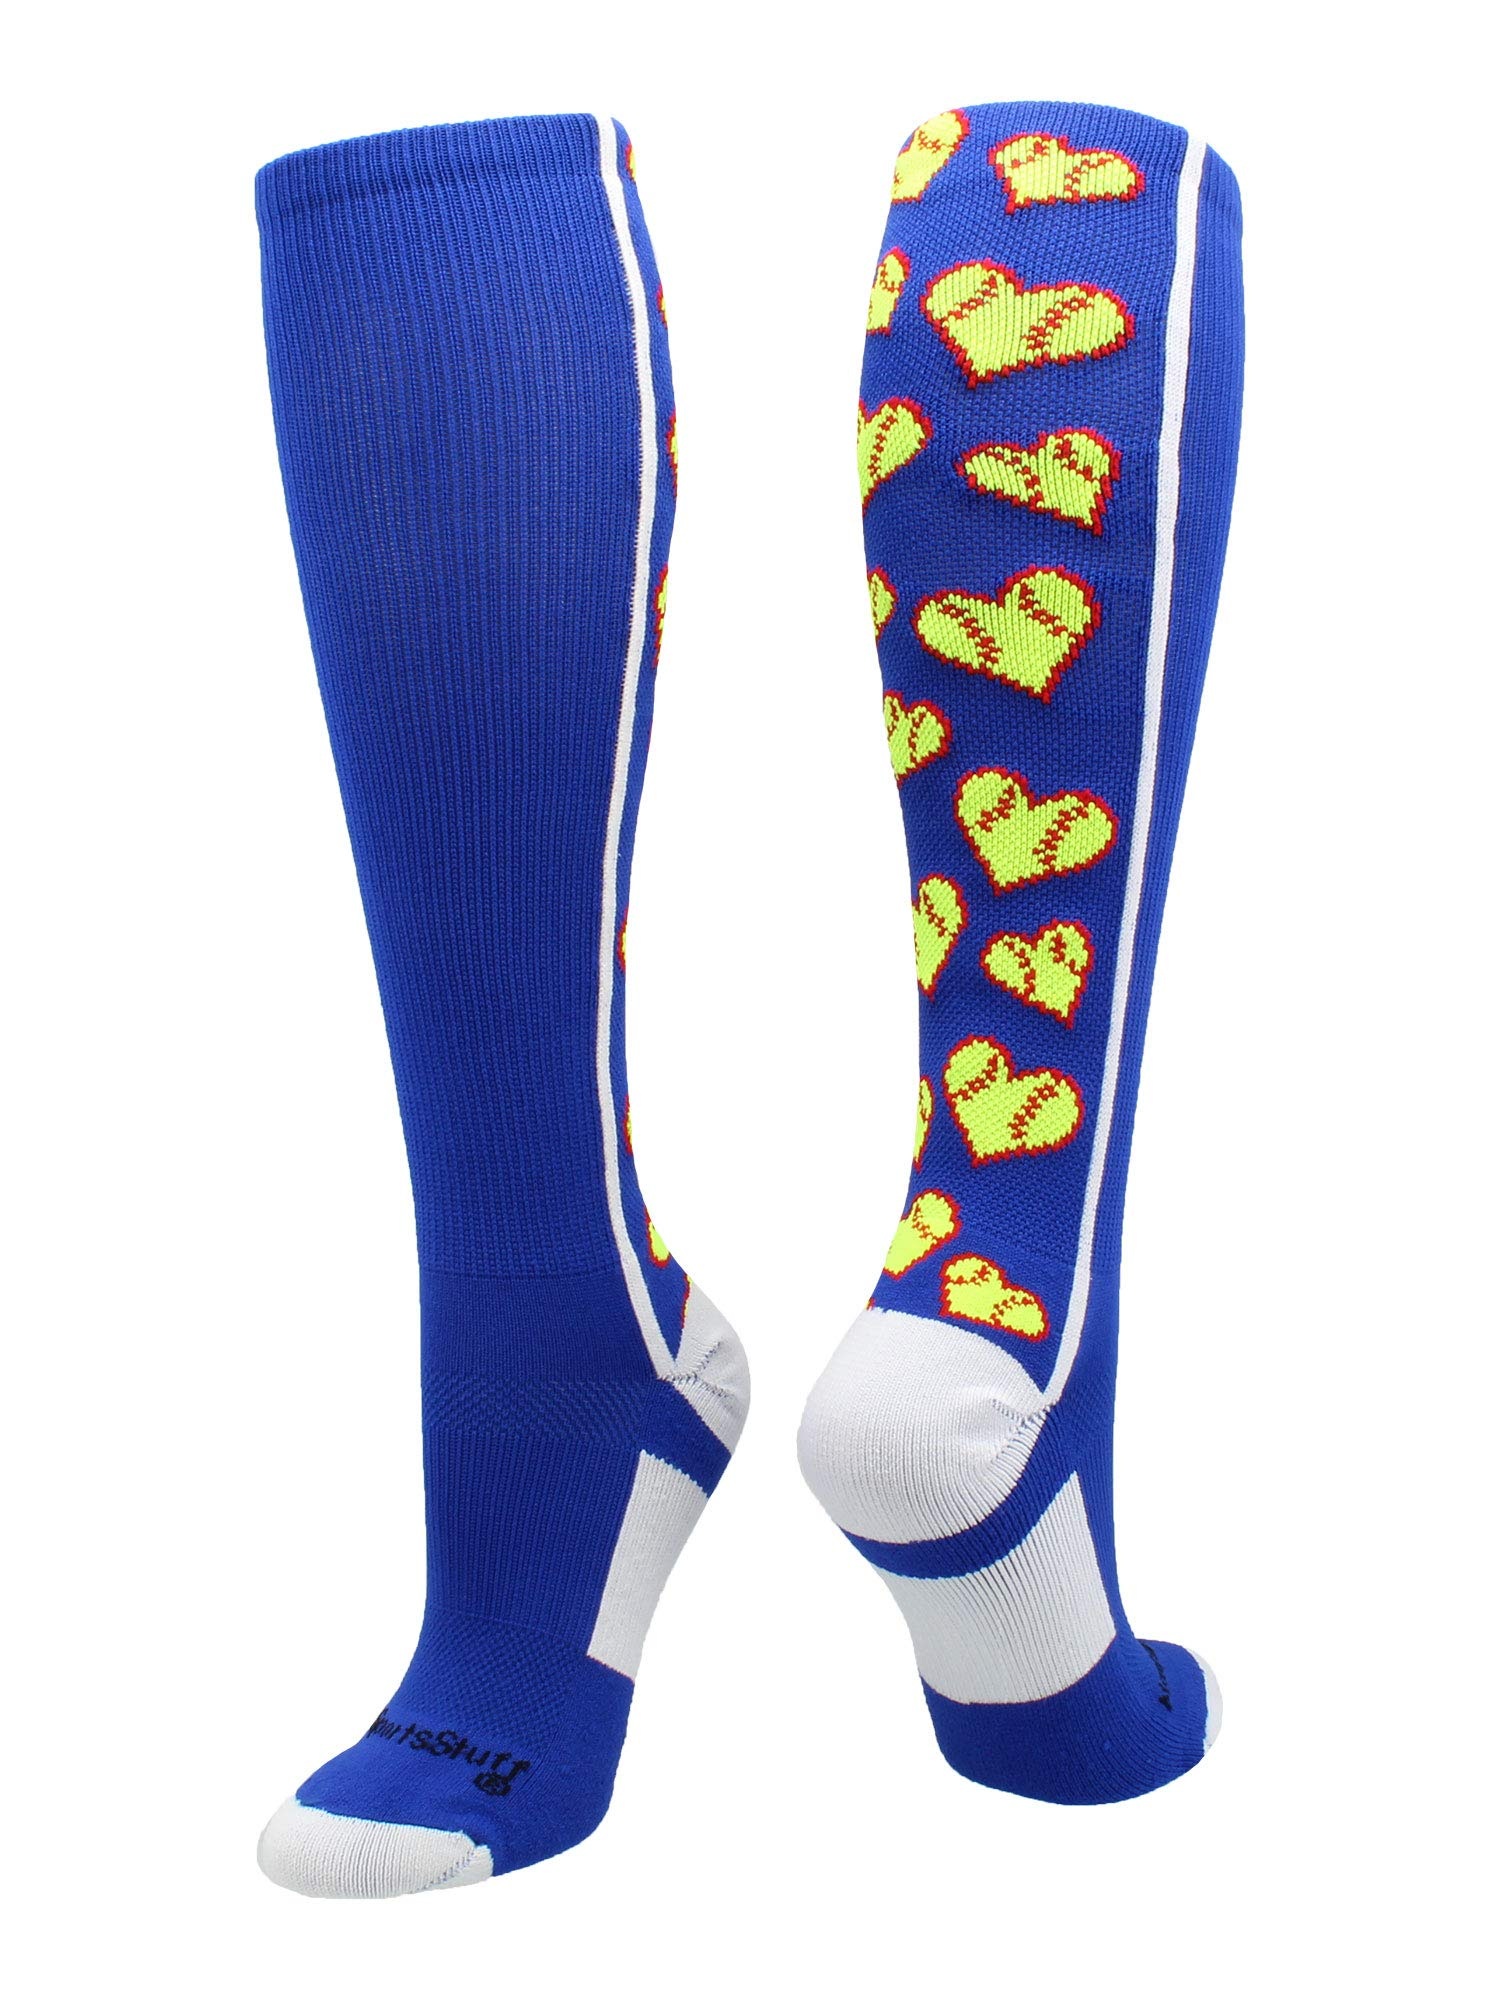 MadSportsStuff Love Softball Socks with Hearts Over The Calf (Royal/White, Small)